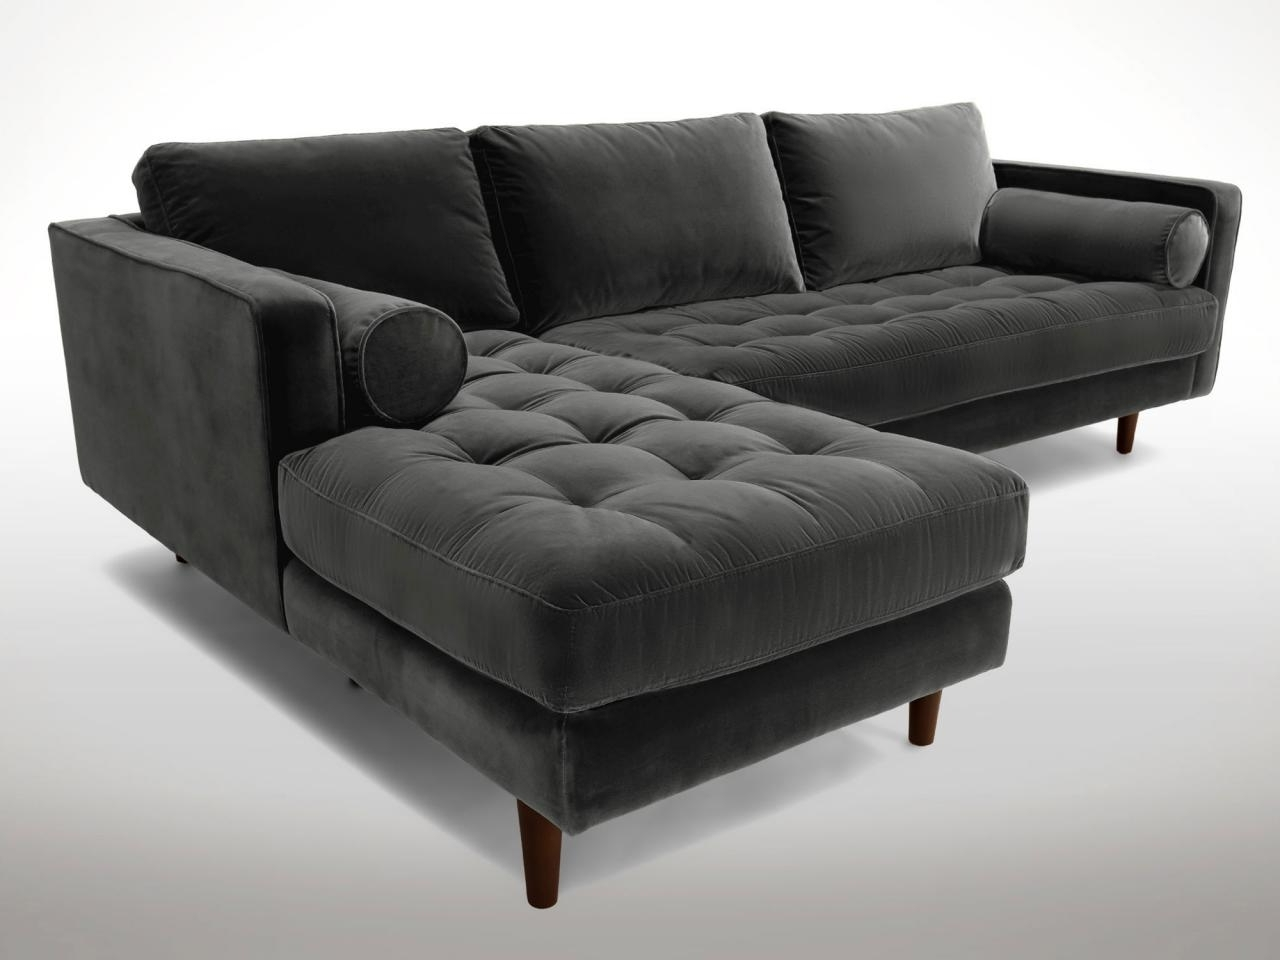 Newest Velvet Sofas Throughout 11 Of The Best Velvet Sofas To Decorate With (View 10 of 20)